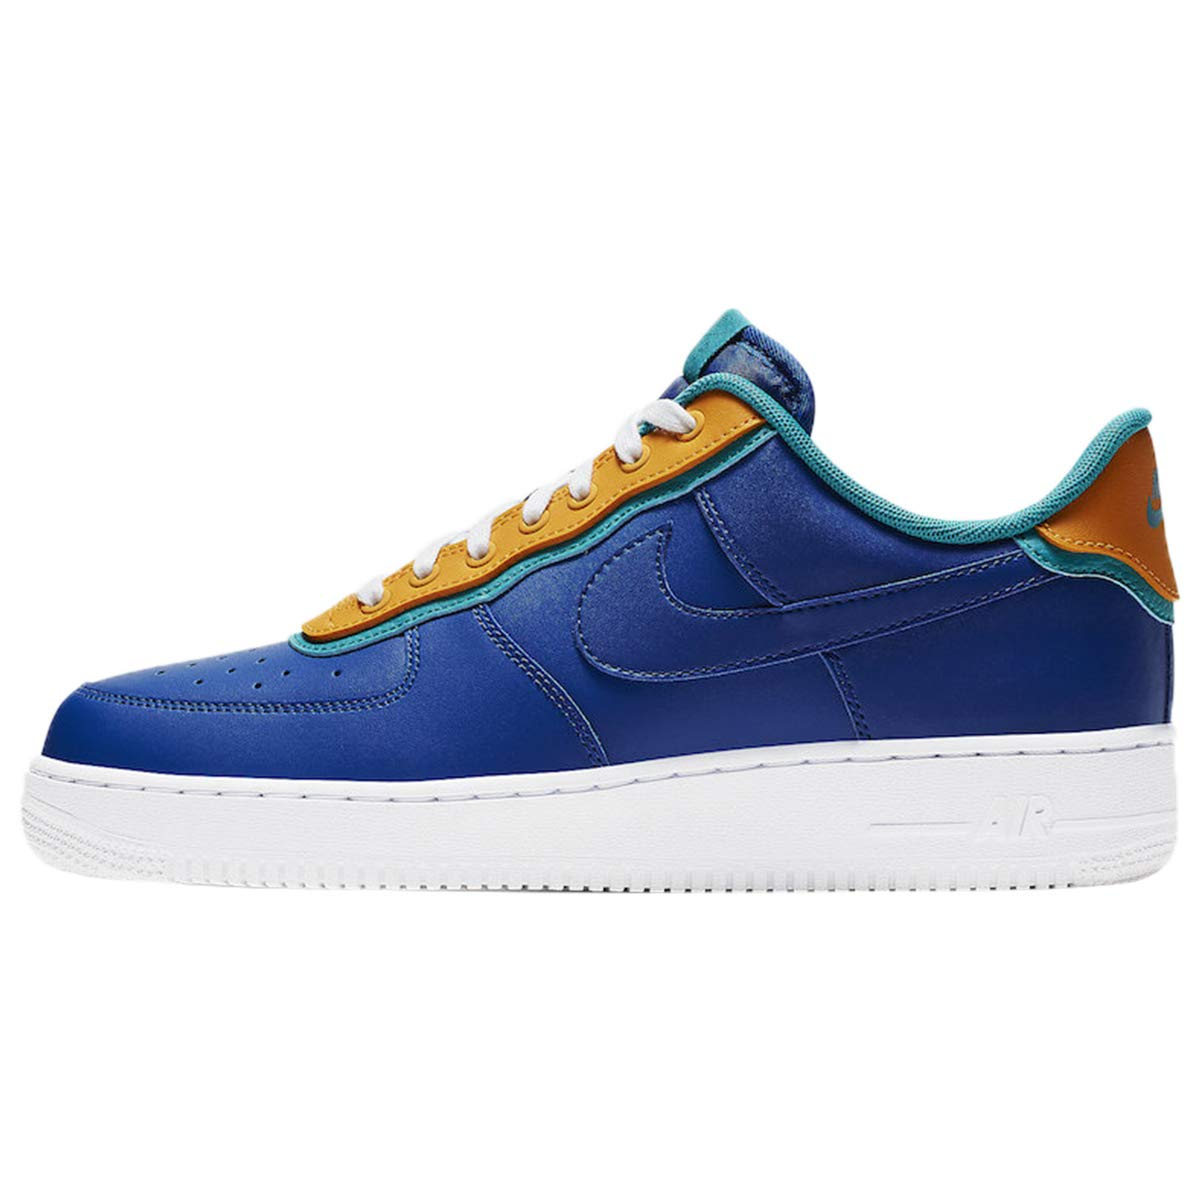 MultiCouleure (Indigo Force Indigo Force Canyon or 000) Nike Air Force 1 '07 Lv8 1, Chaussures de Basketball Homme 43 EU